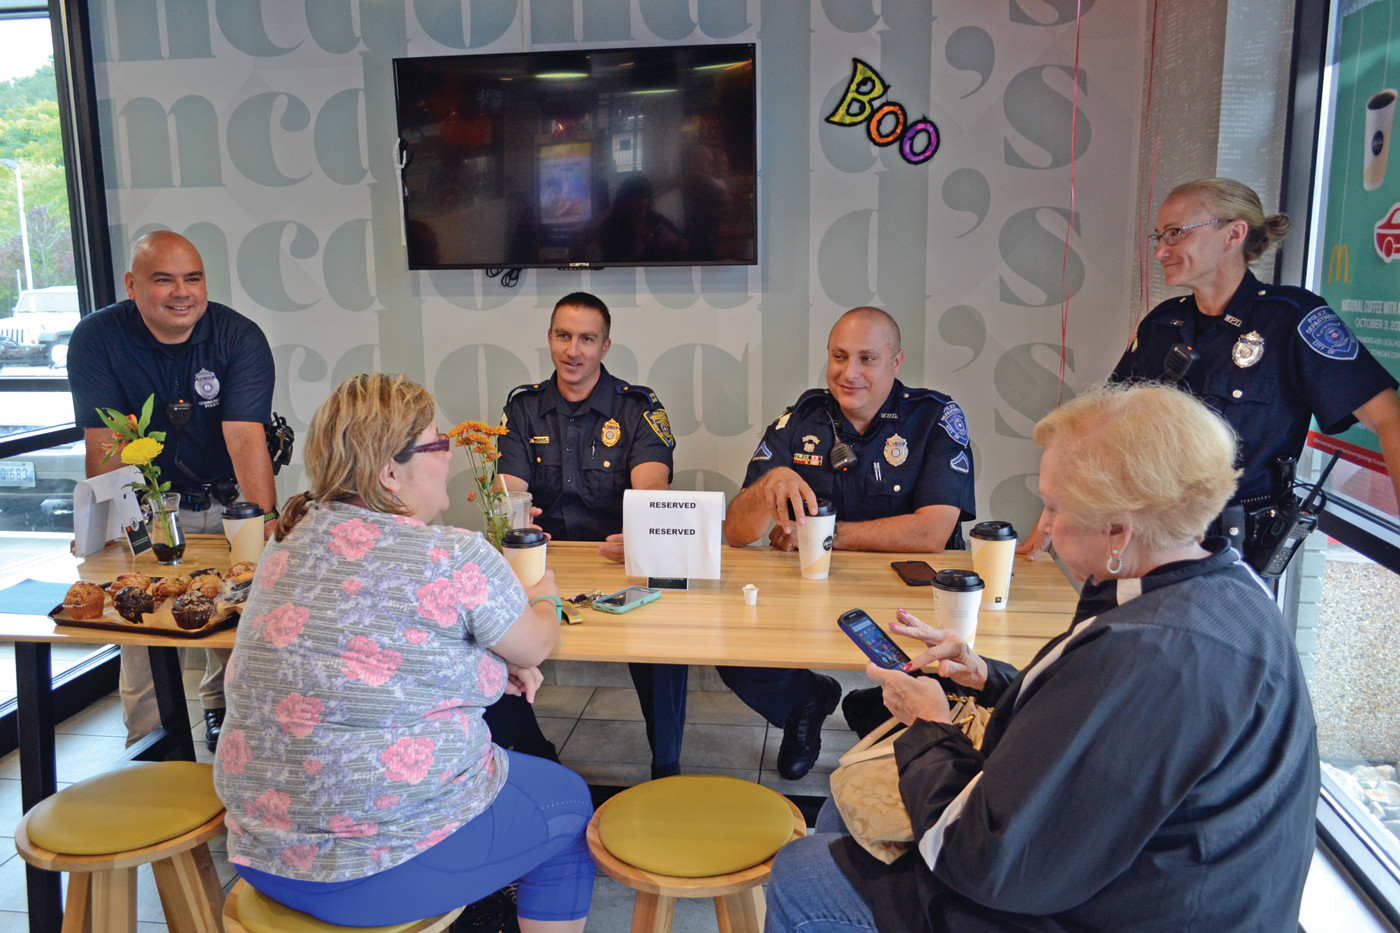 COPS AND COFFEE: Officers Mark Jandreau, Capt. Ryan Sornberger, Matt Moretti and Jill Marshall talk with Carol Sanquist (front right) and Bethany Hashway (to her left) during the Coffee with a Cop event held at McDonald's on Post Road in Warwick on Wednesday.